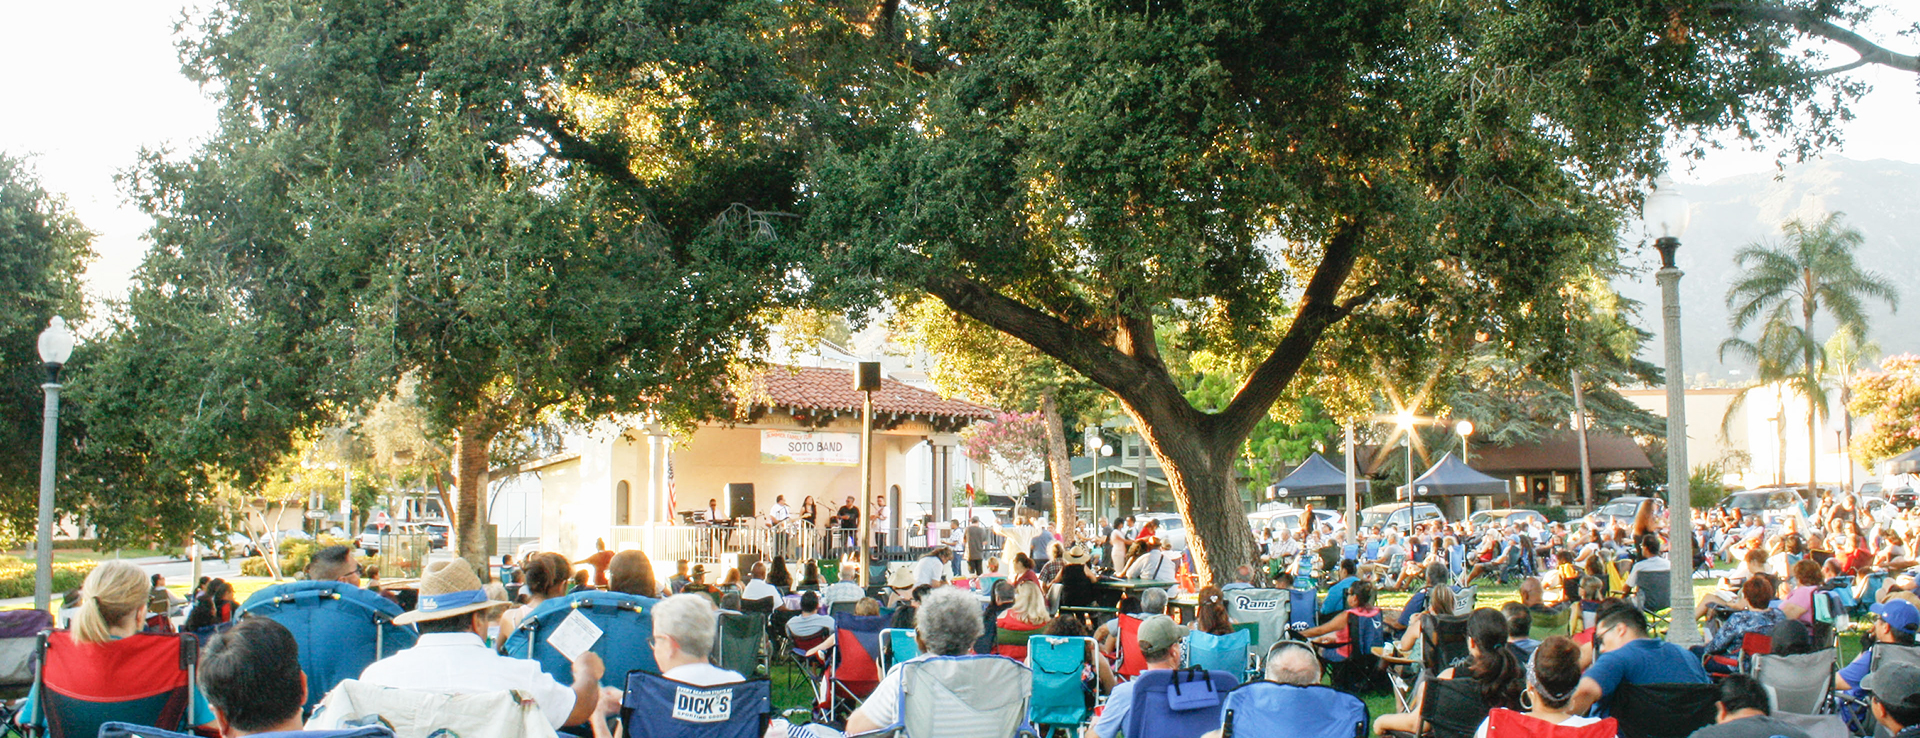 Monrovia Summer Concerts in the Park Banner